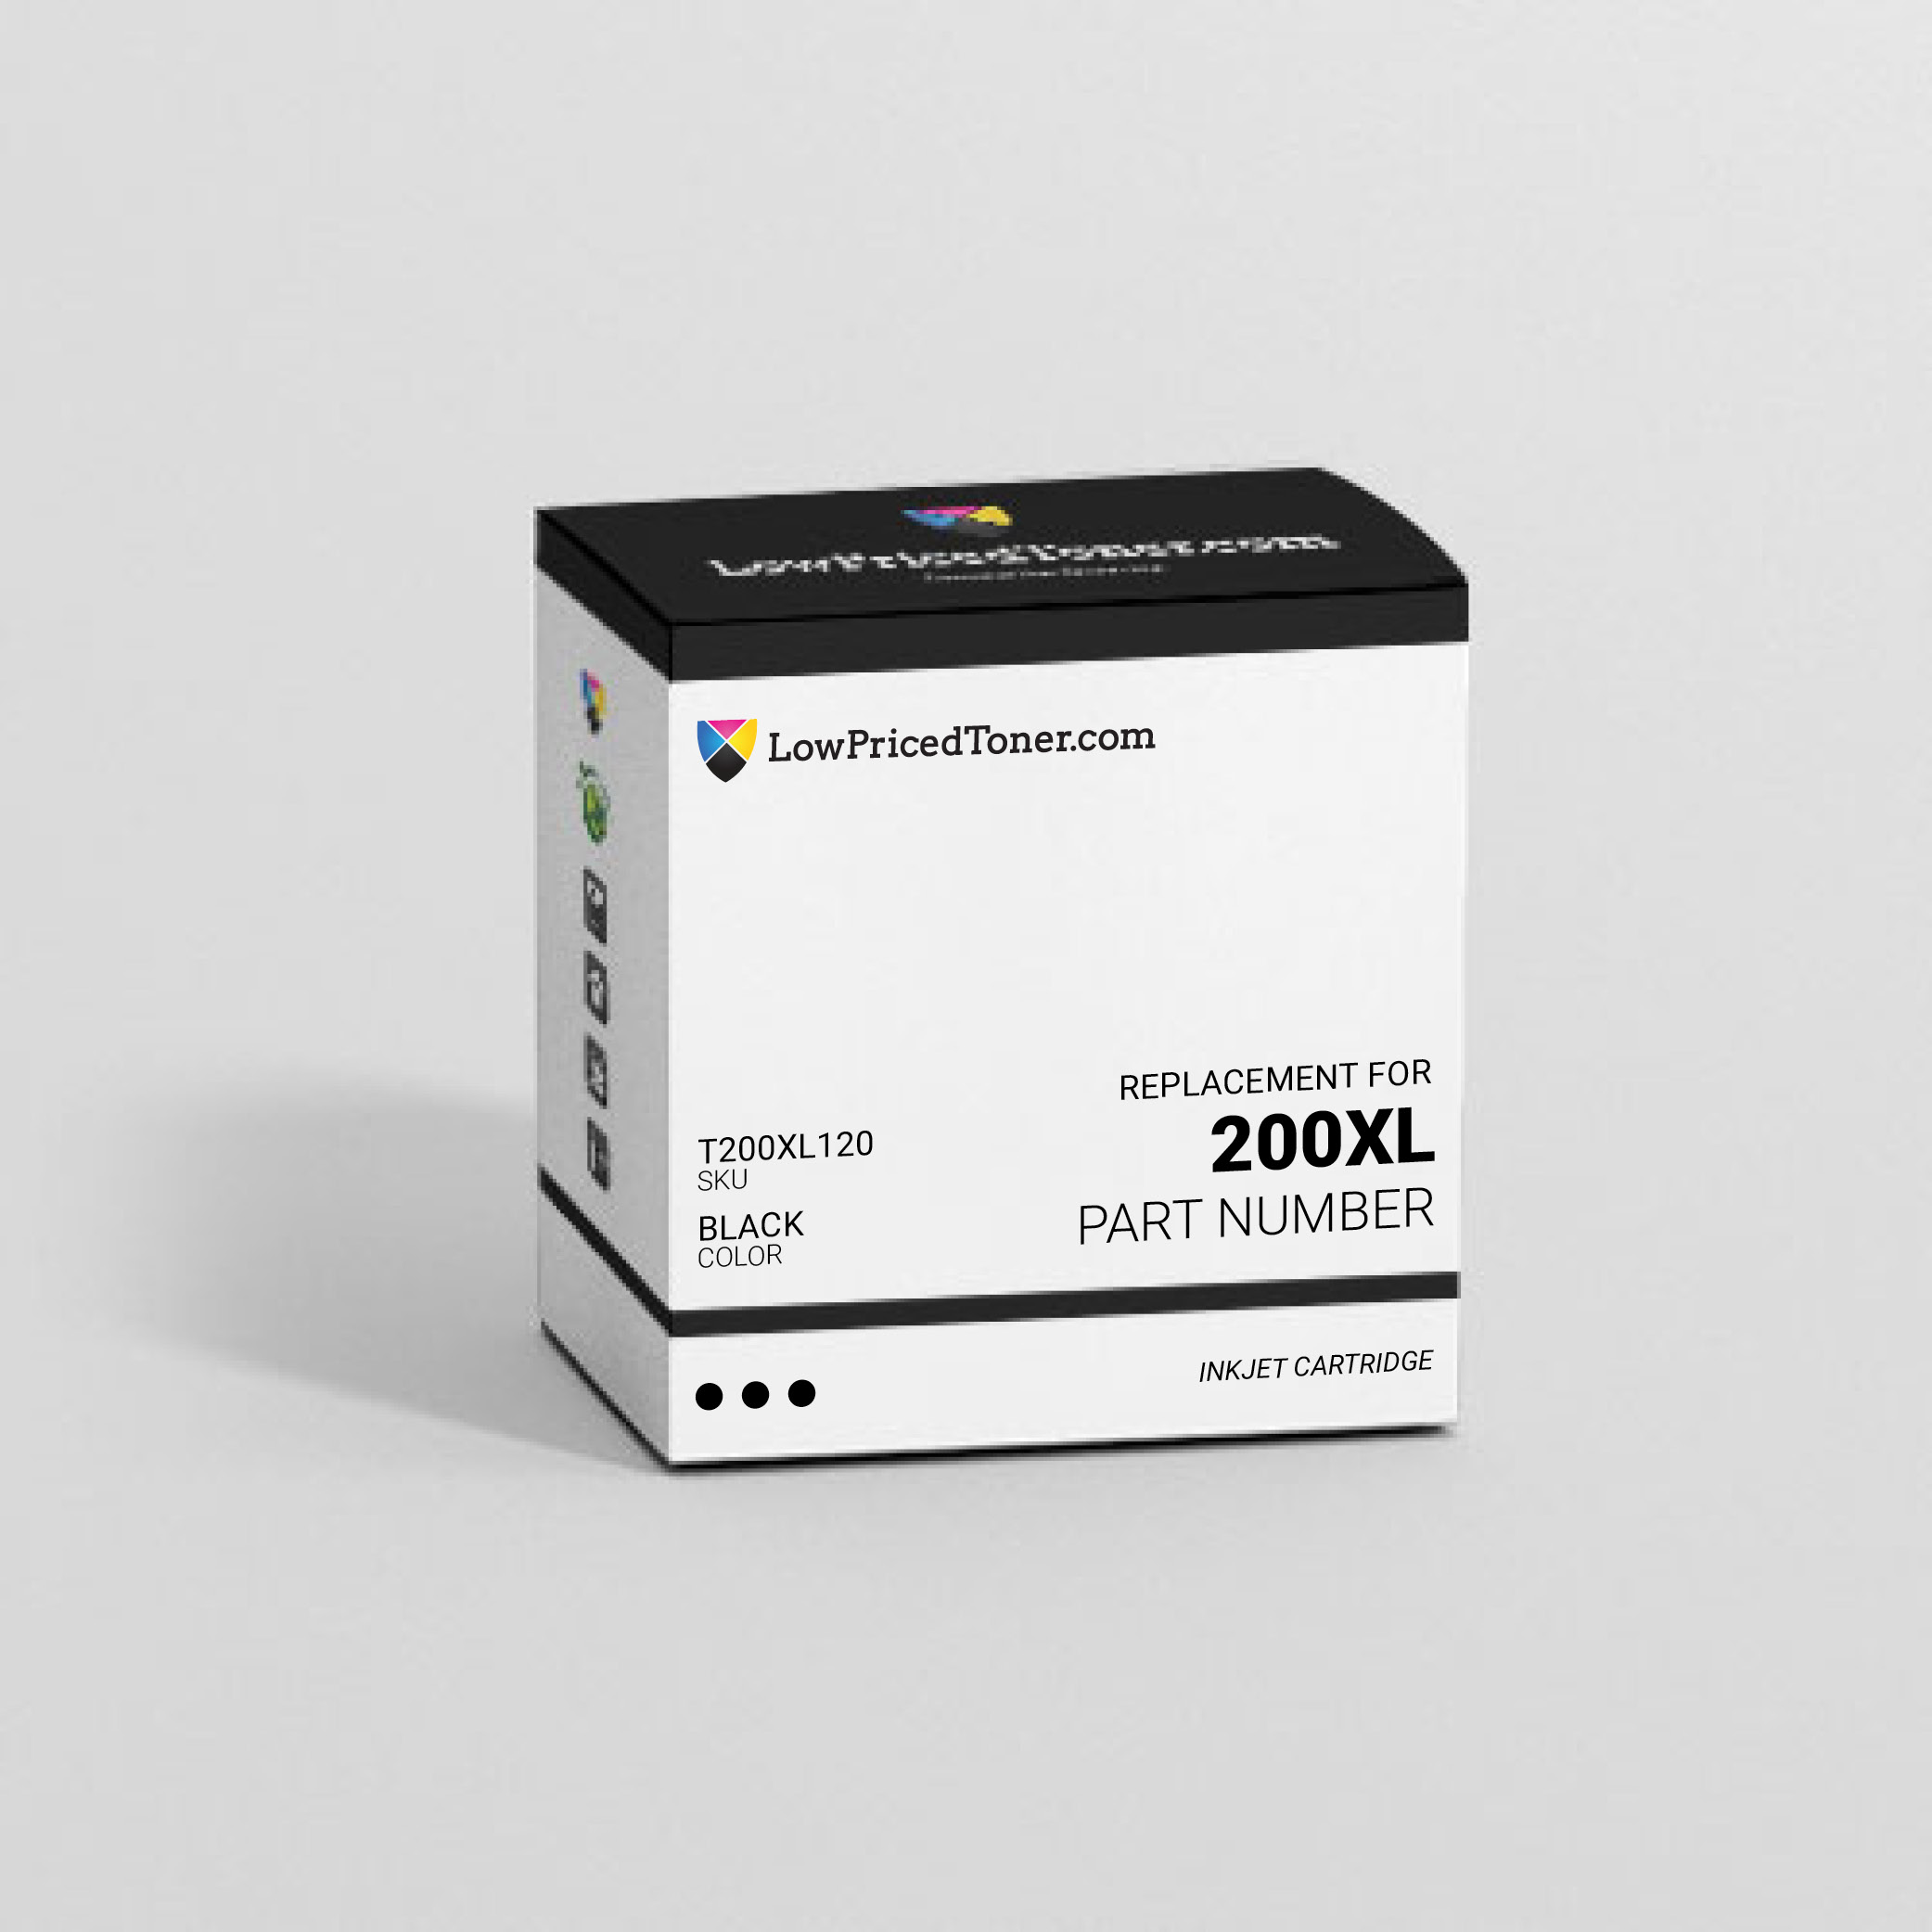 Epson T200XL120 200XL Remanufactured Black Ink Cartridge High Yield